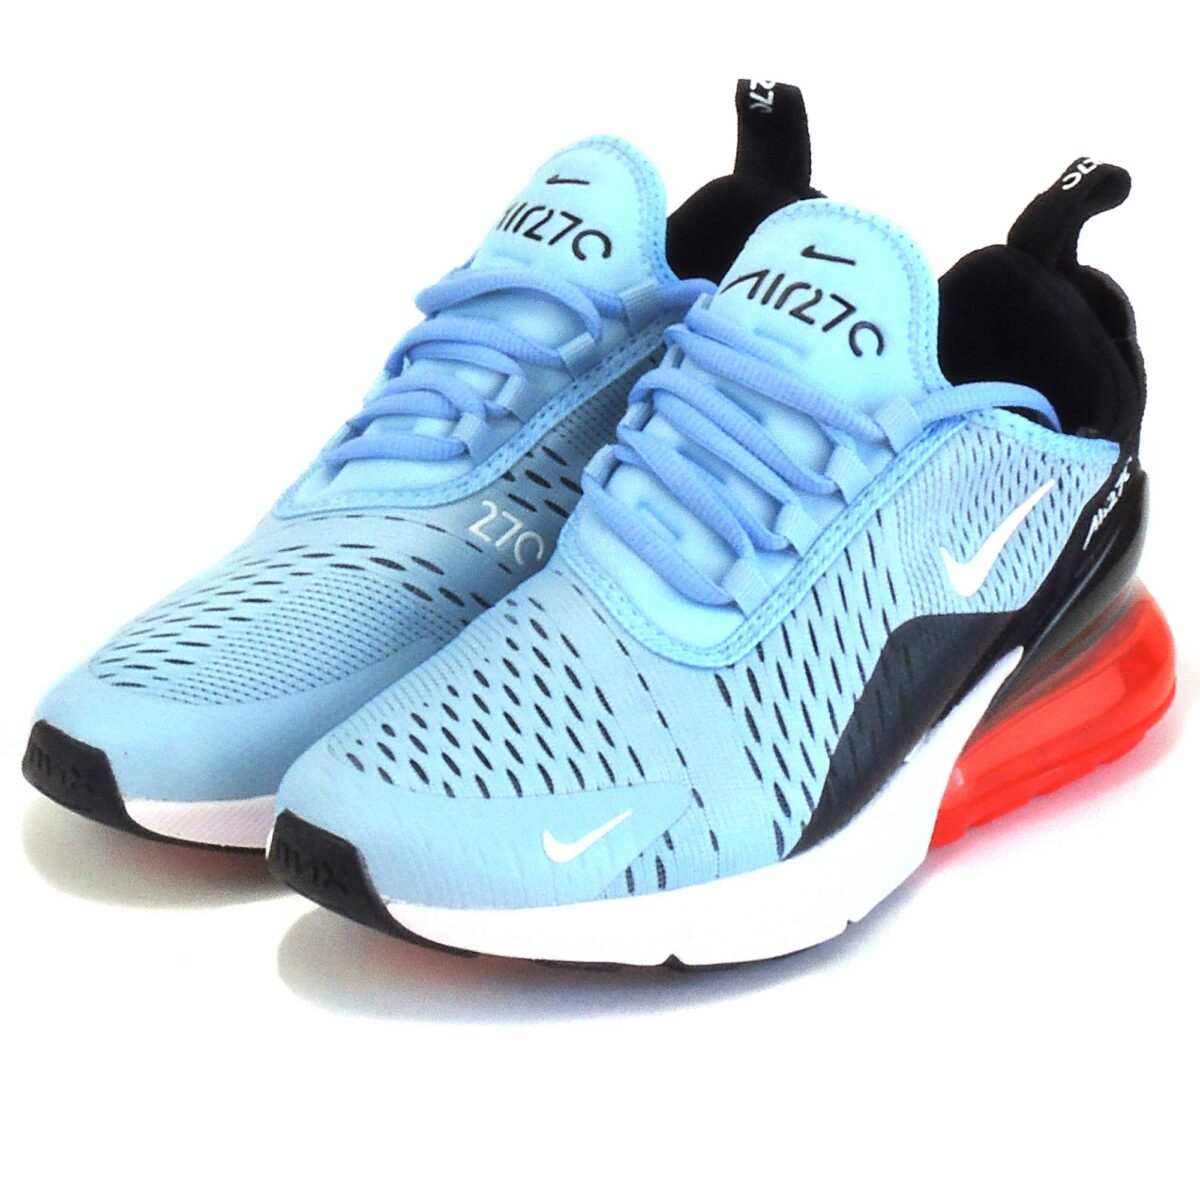 nike air max 270 white pink AH6789_400 купить